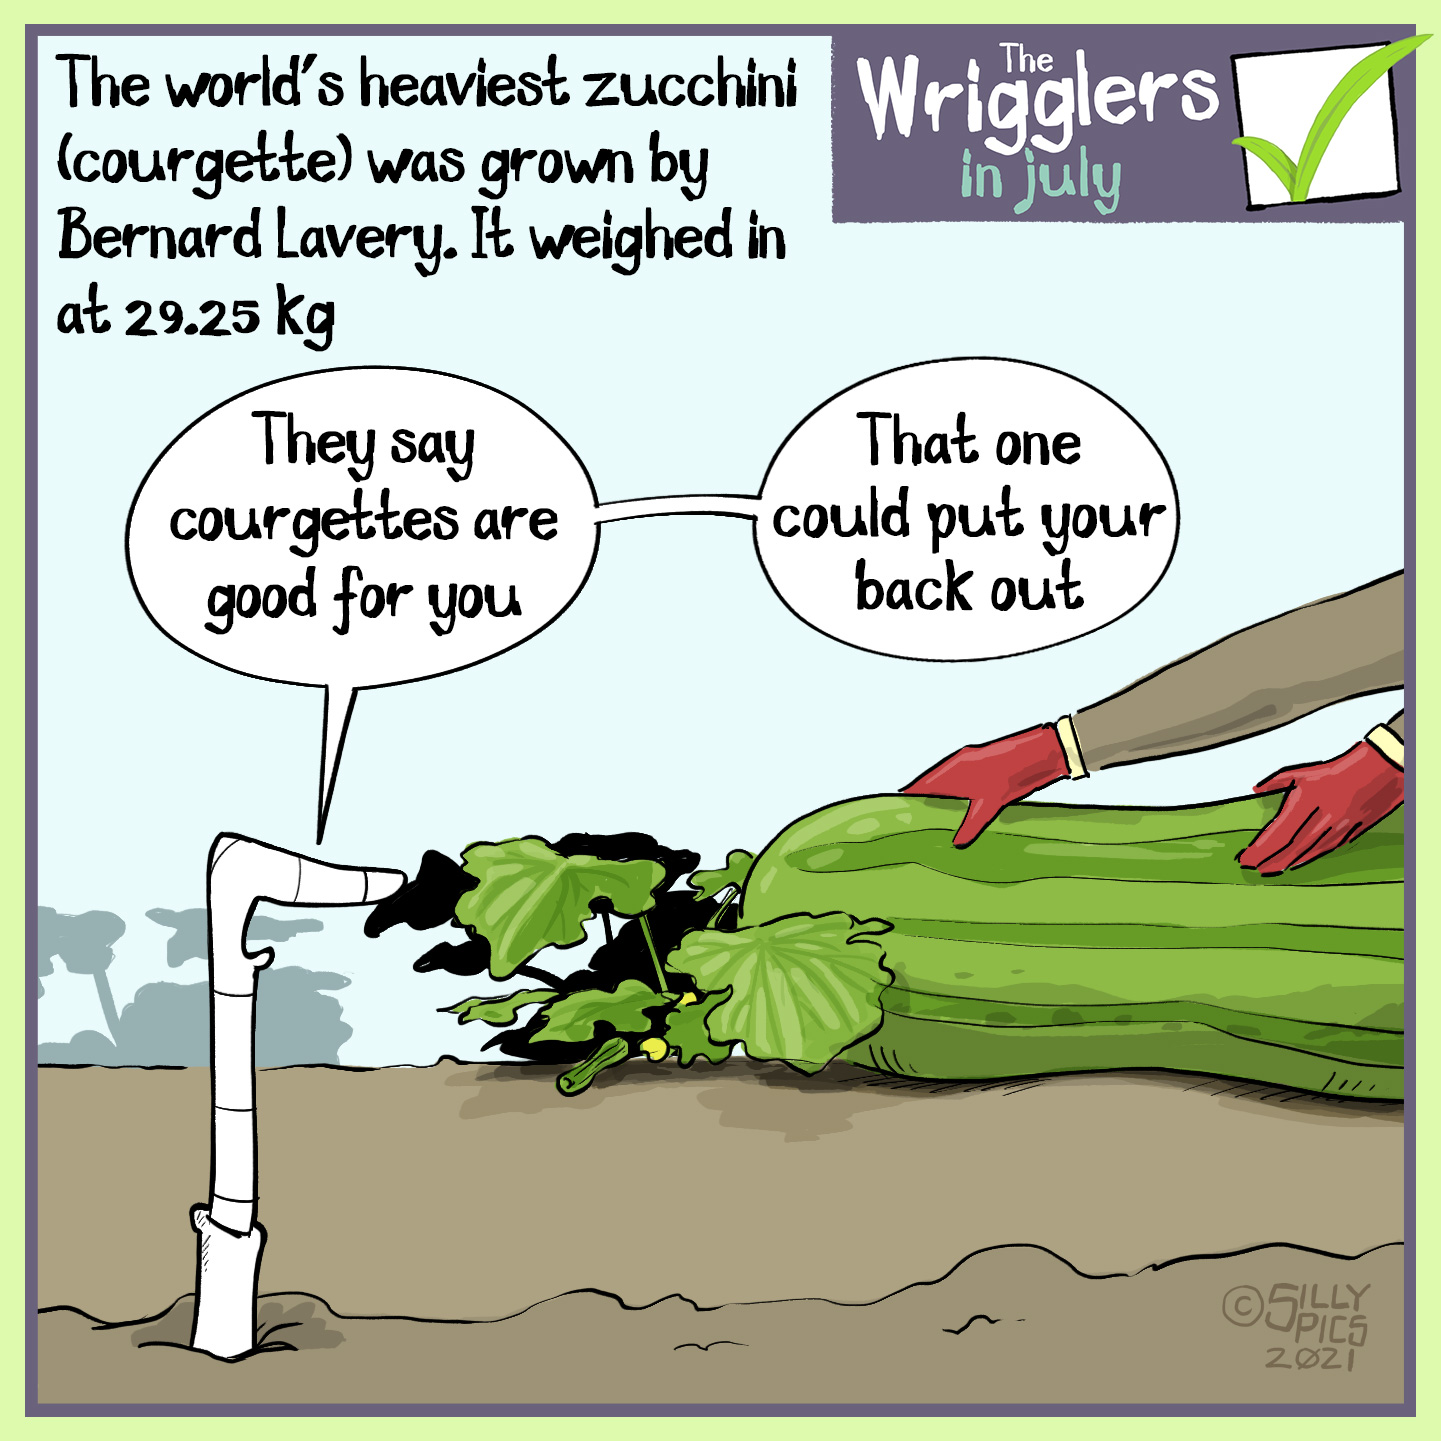 """The cartoon reads, The world's heaviest zucchini (courgette) was grown by Bernard Lavery. It weighed in at 29.25 kilograms The cartoon is of one worm in front of a very large large and heavy looking fruit being picked - the fruit is five times thicker than the persons arms picking it. The worm says, """" They say courgettes are good for you … That one could put your back out"""""""